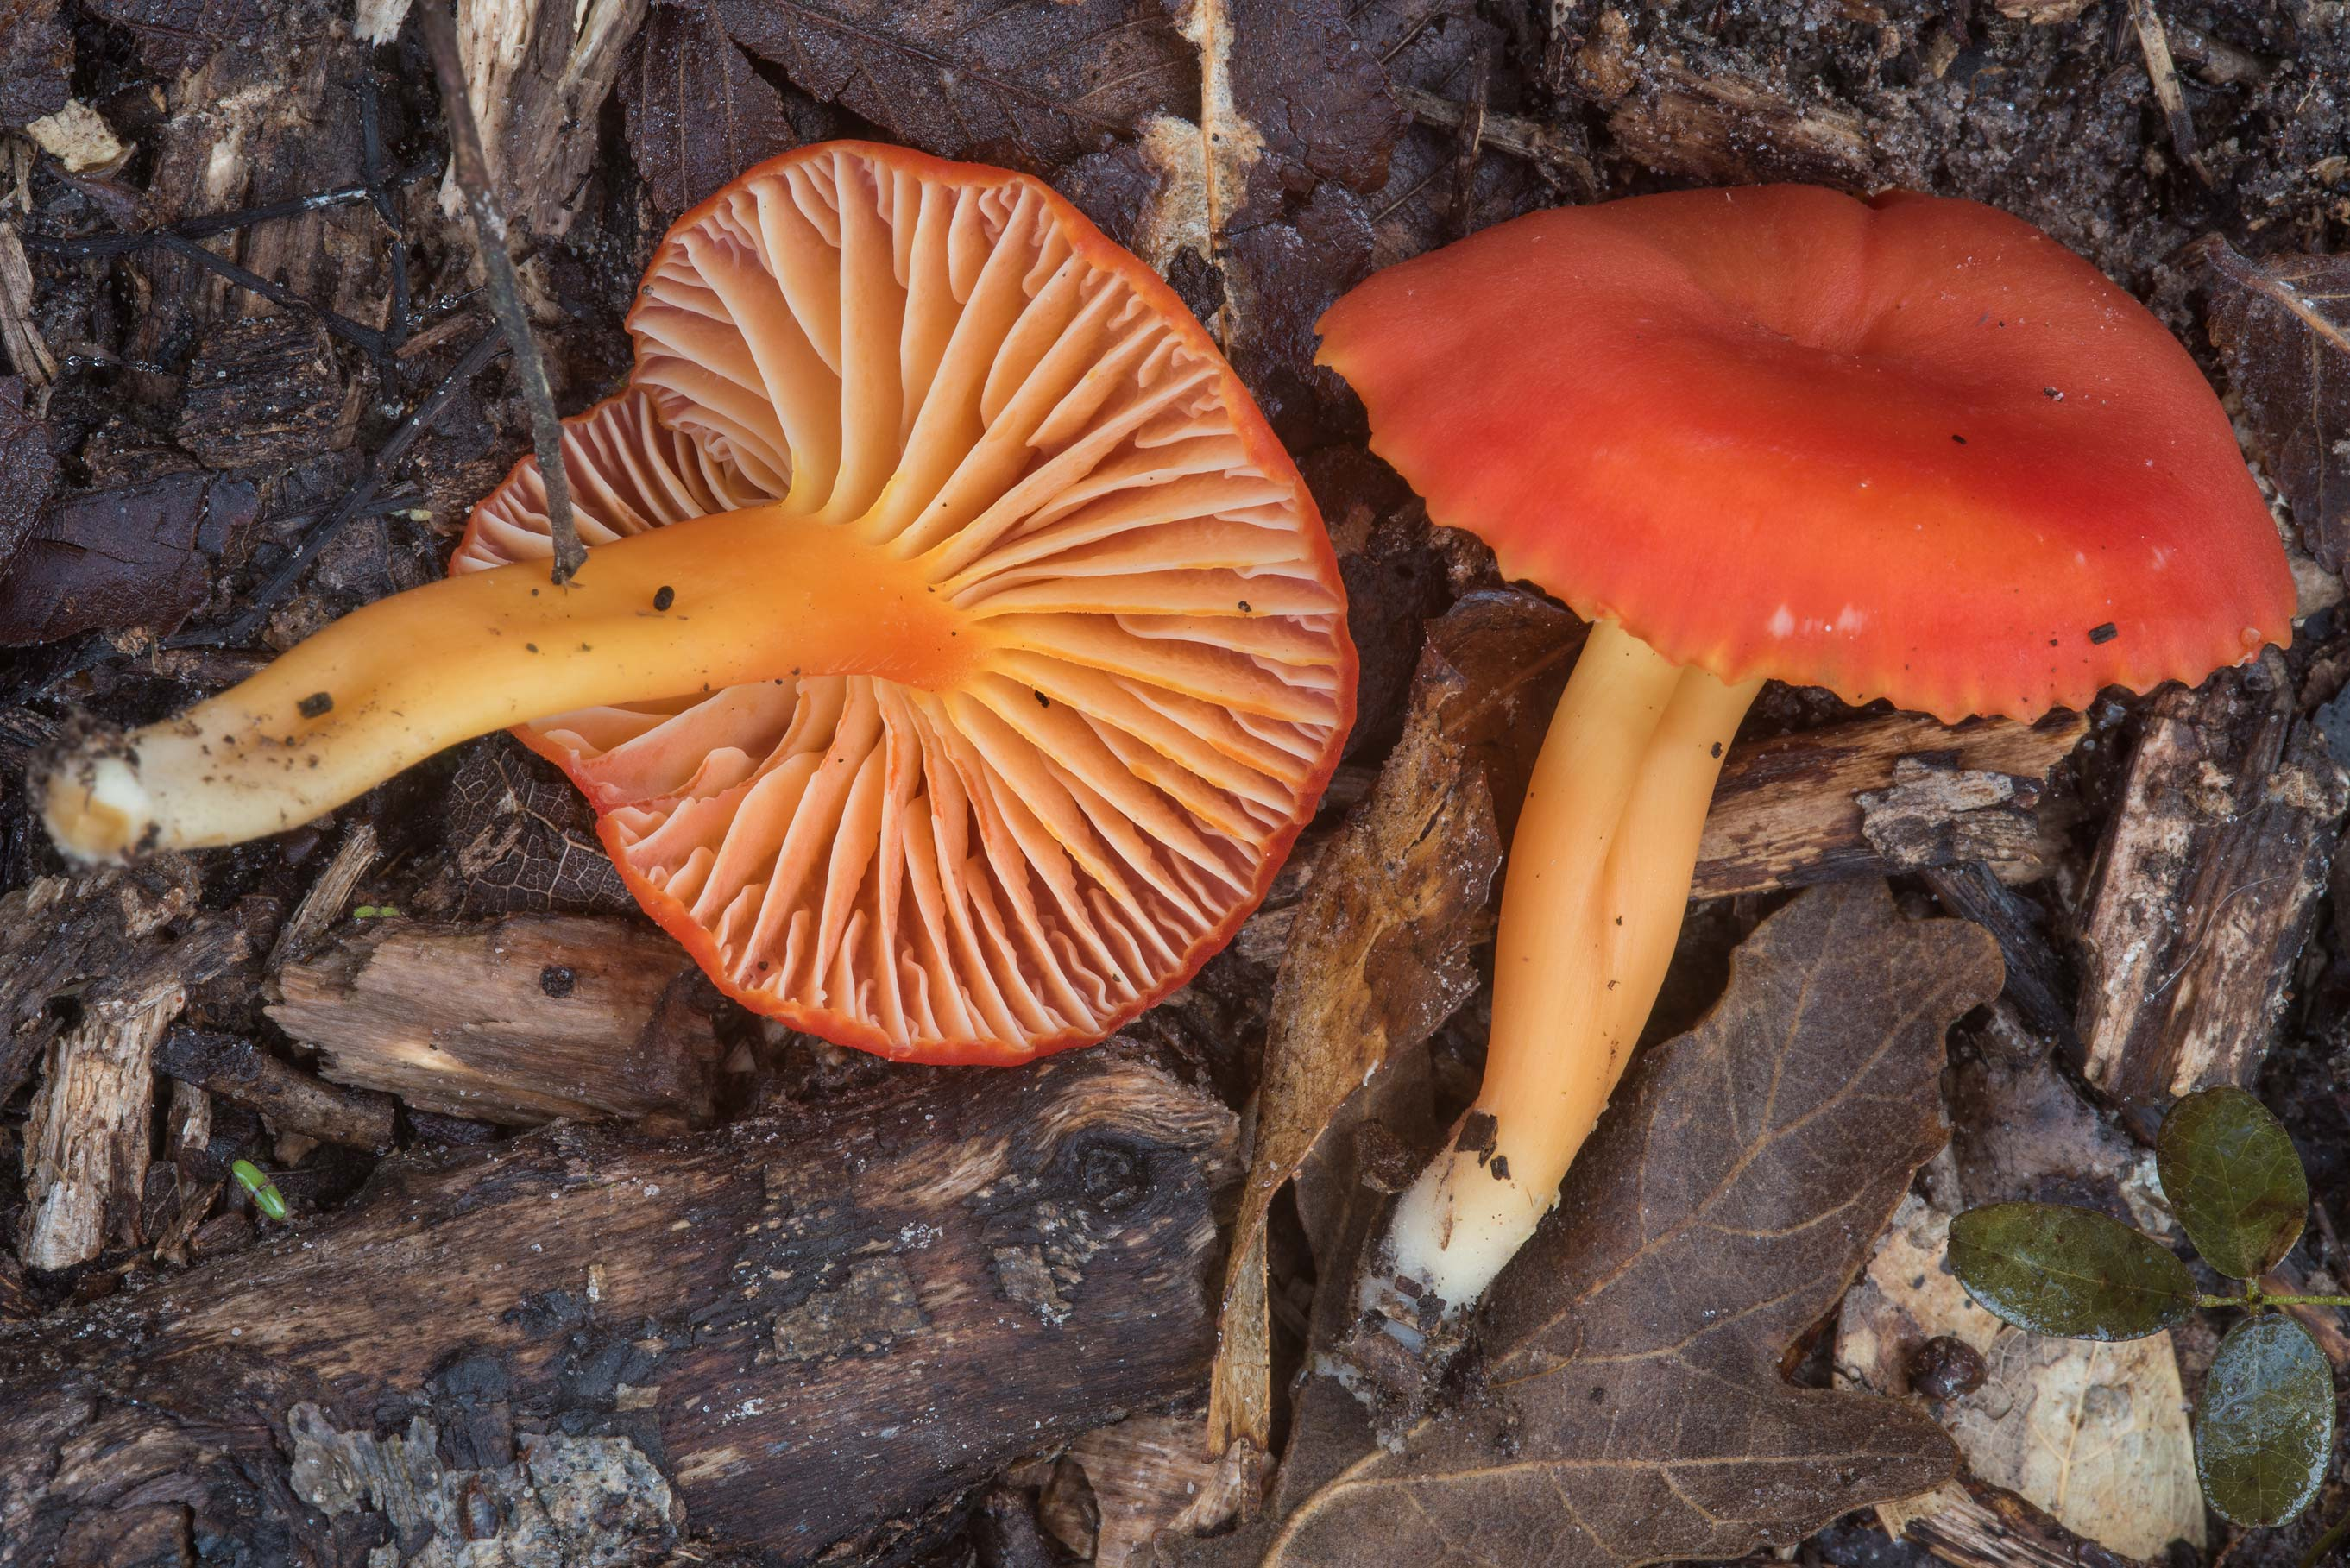 Red waxcap (Hygrocybe) mushrooms in Lick Creek Park. College Station, Texas